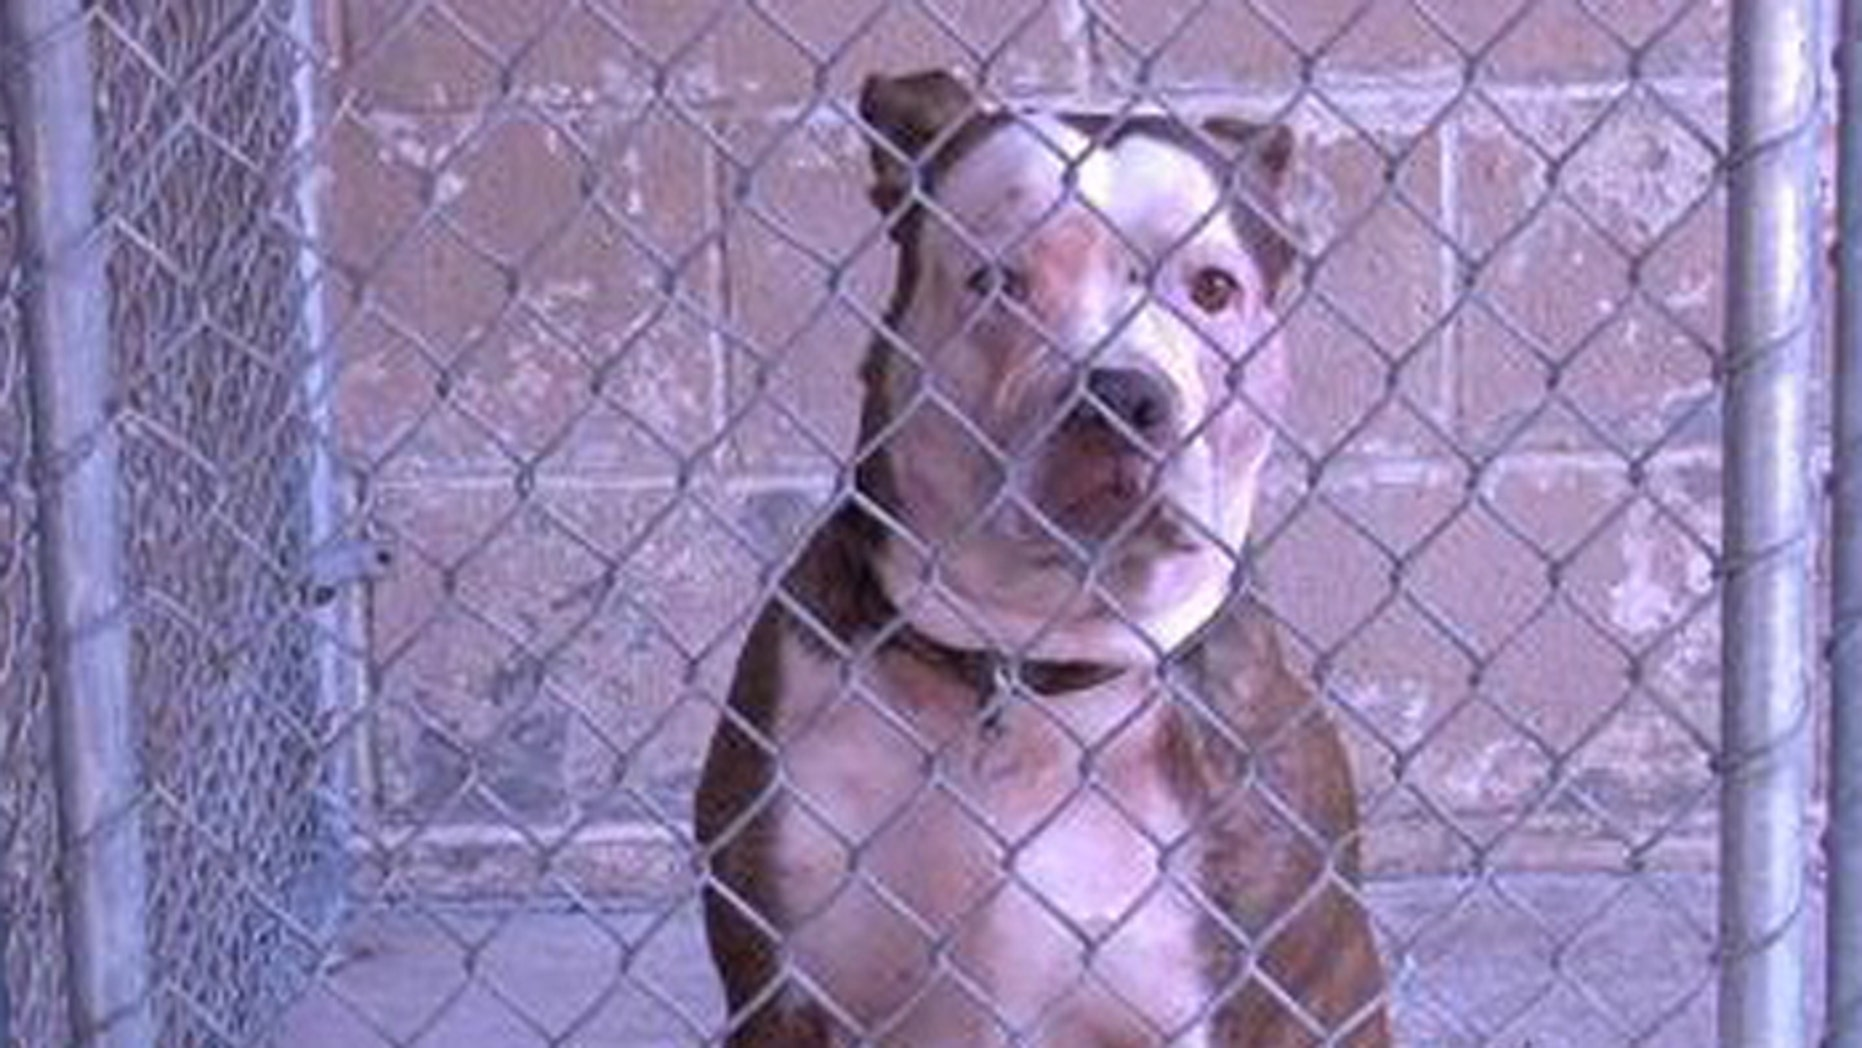 This pit bull has been quarantined after killing a man who was trying to revive its owner. (Courtesy: Ohio County, WV, Animal Control)